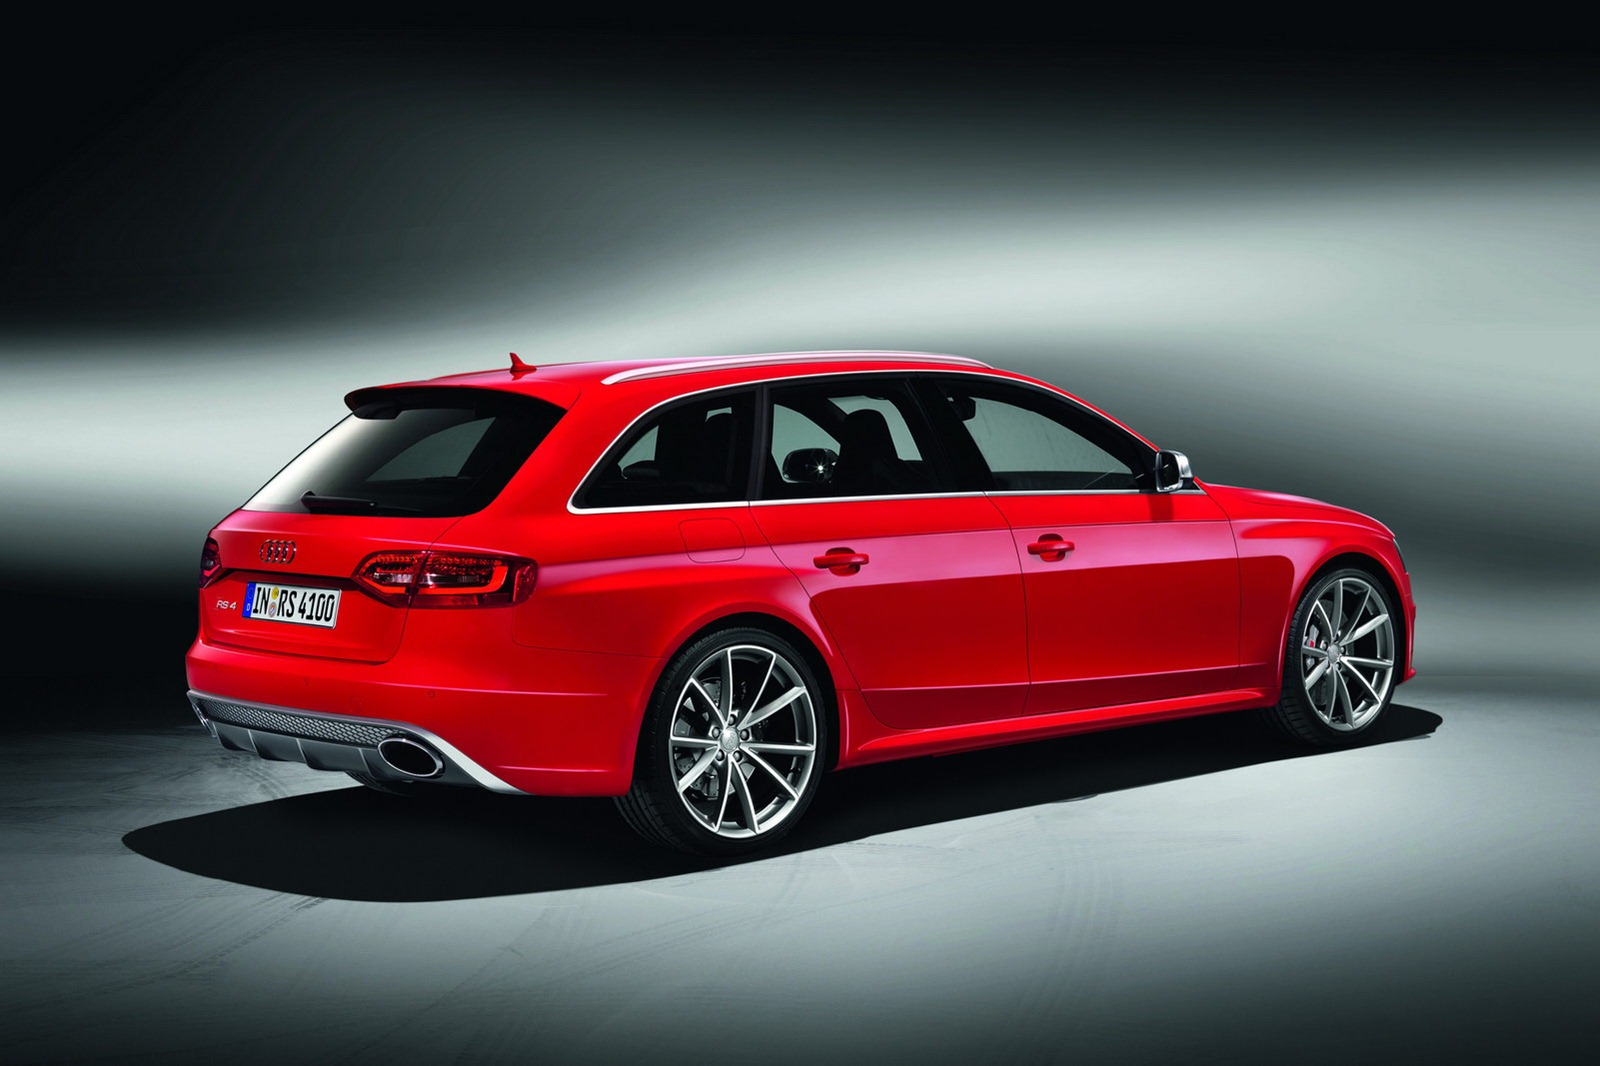 2012 Audi Rs4 Avant Specs And Photos Autoevolution